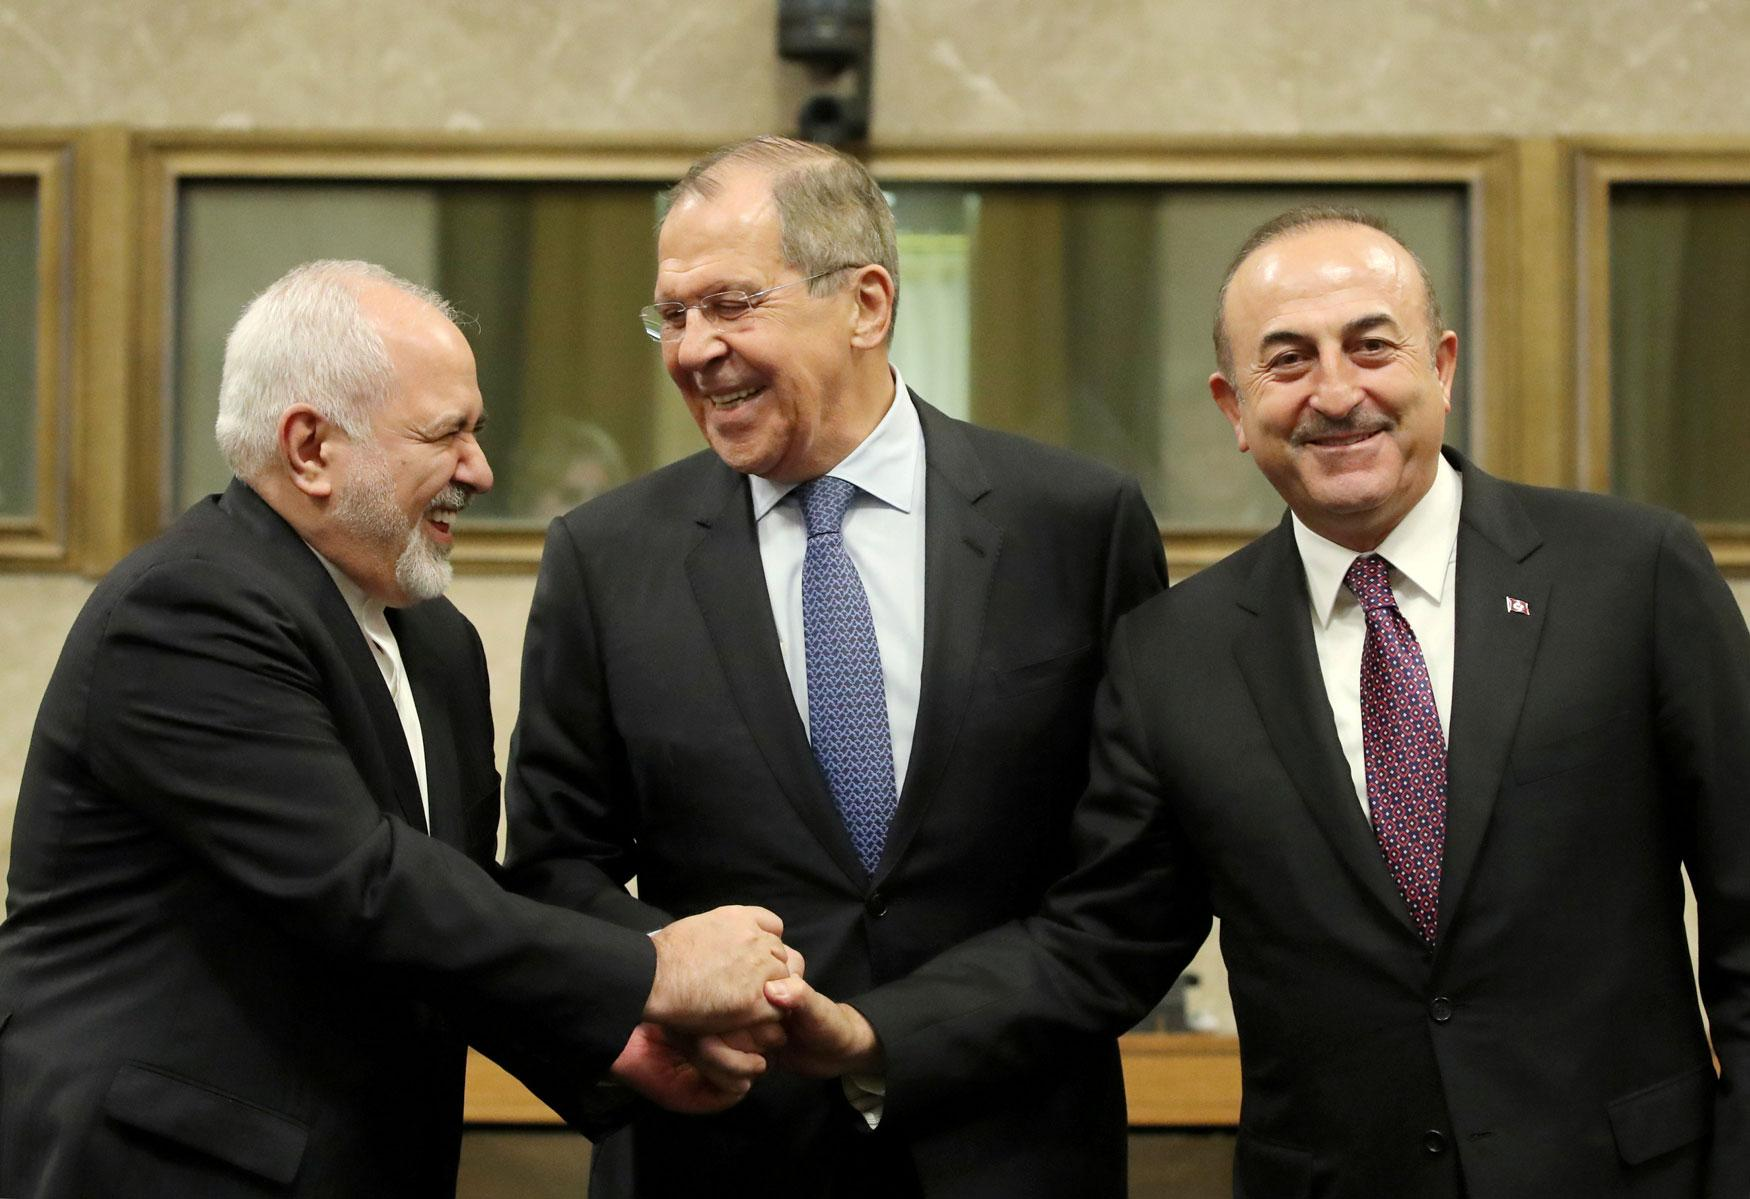 Foreign ministers of Russia, Turkey and Iran at the United Nations in Geneva, Switzerland – December 18, 2018 (Photo VCG)